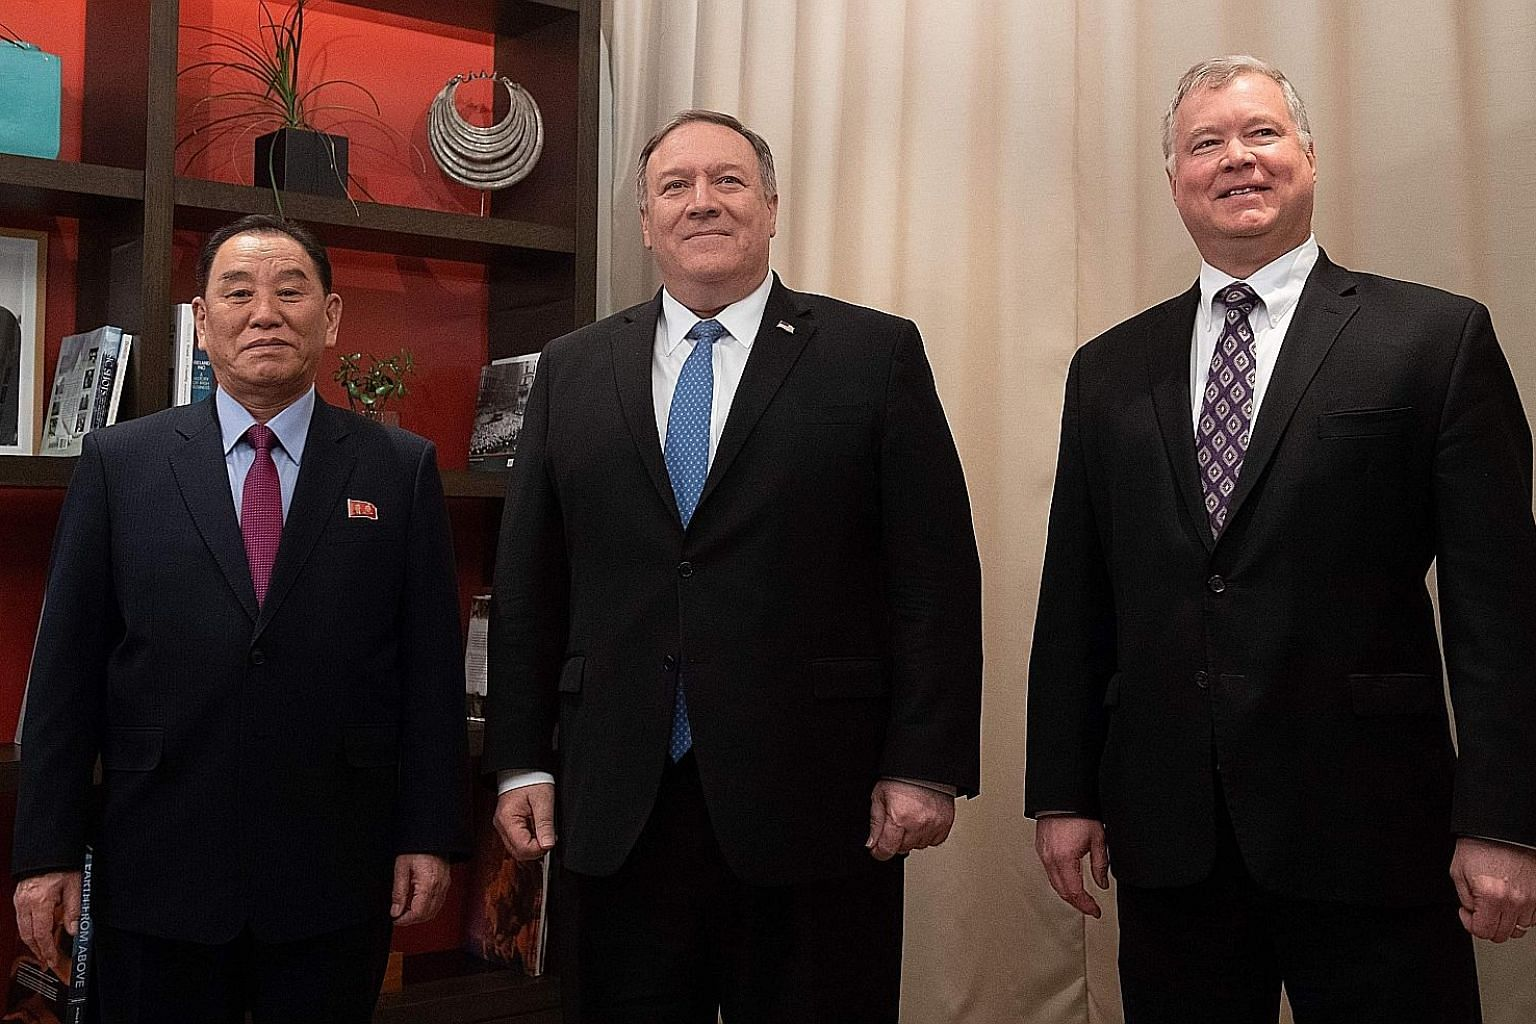 US Secretary of State Mike Pompeo flanked by US Special Representative for North Korea Stephen Biegun and North Korean Vice-Chairman Kim Yong Chol before a meeting in Washington, DC, last Friday.